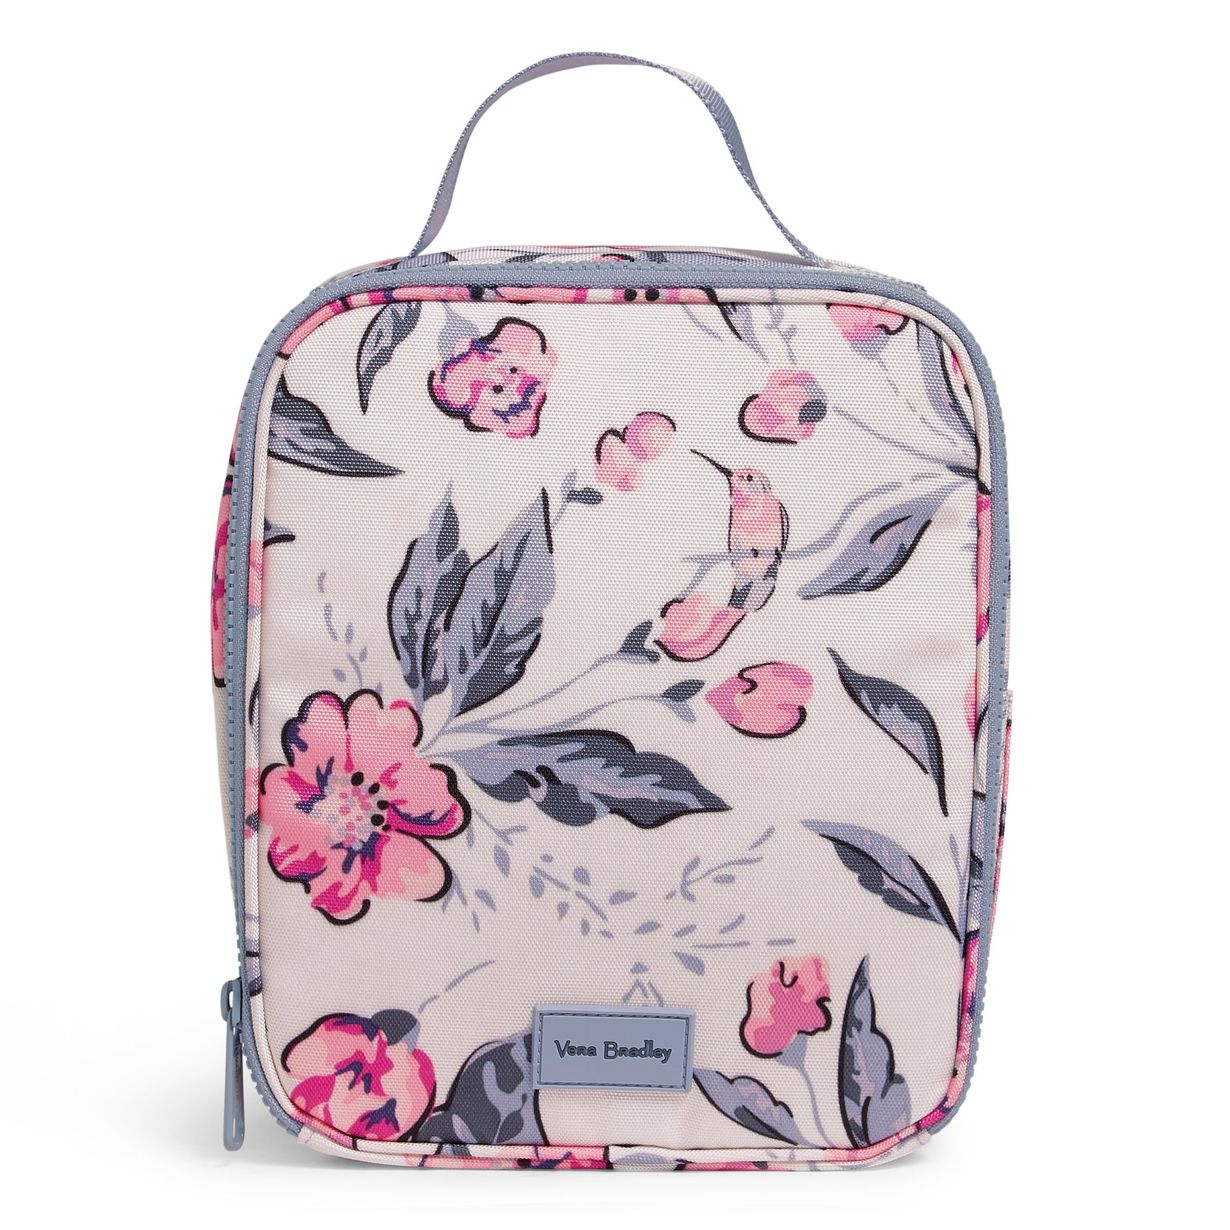 a vera bradley lunch bag with pink and purple watercolor paintings of flowers and hummingbirds